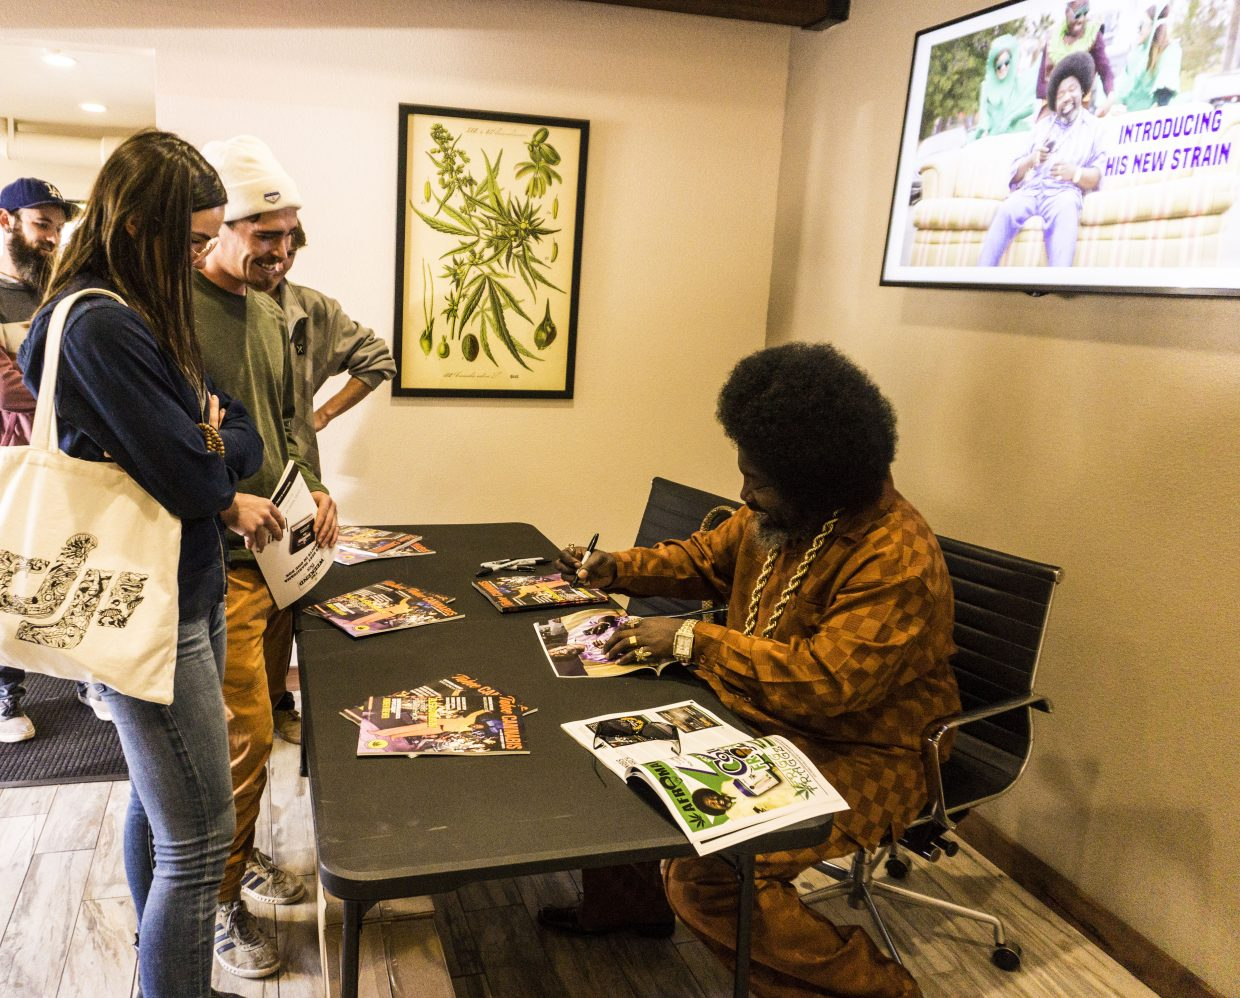 Afroman signs autographs for fans during a visit to NuLeaf in Incline Village.